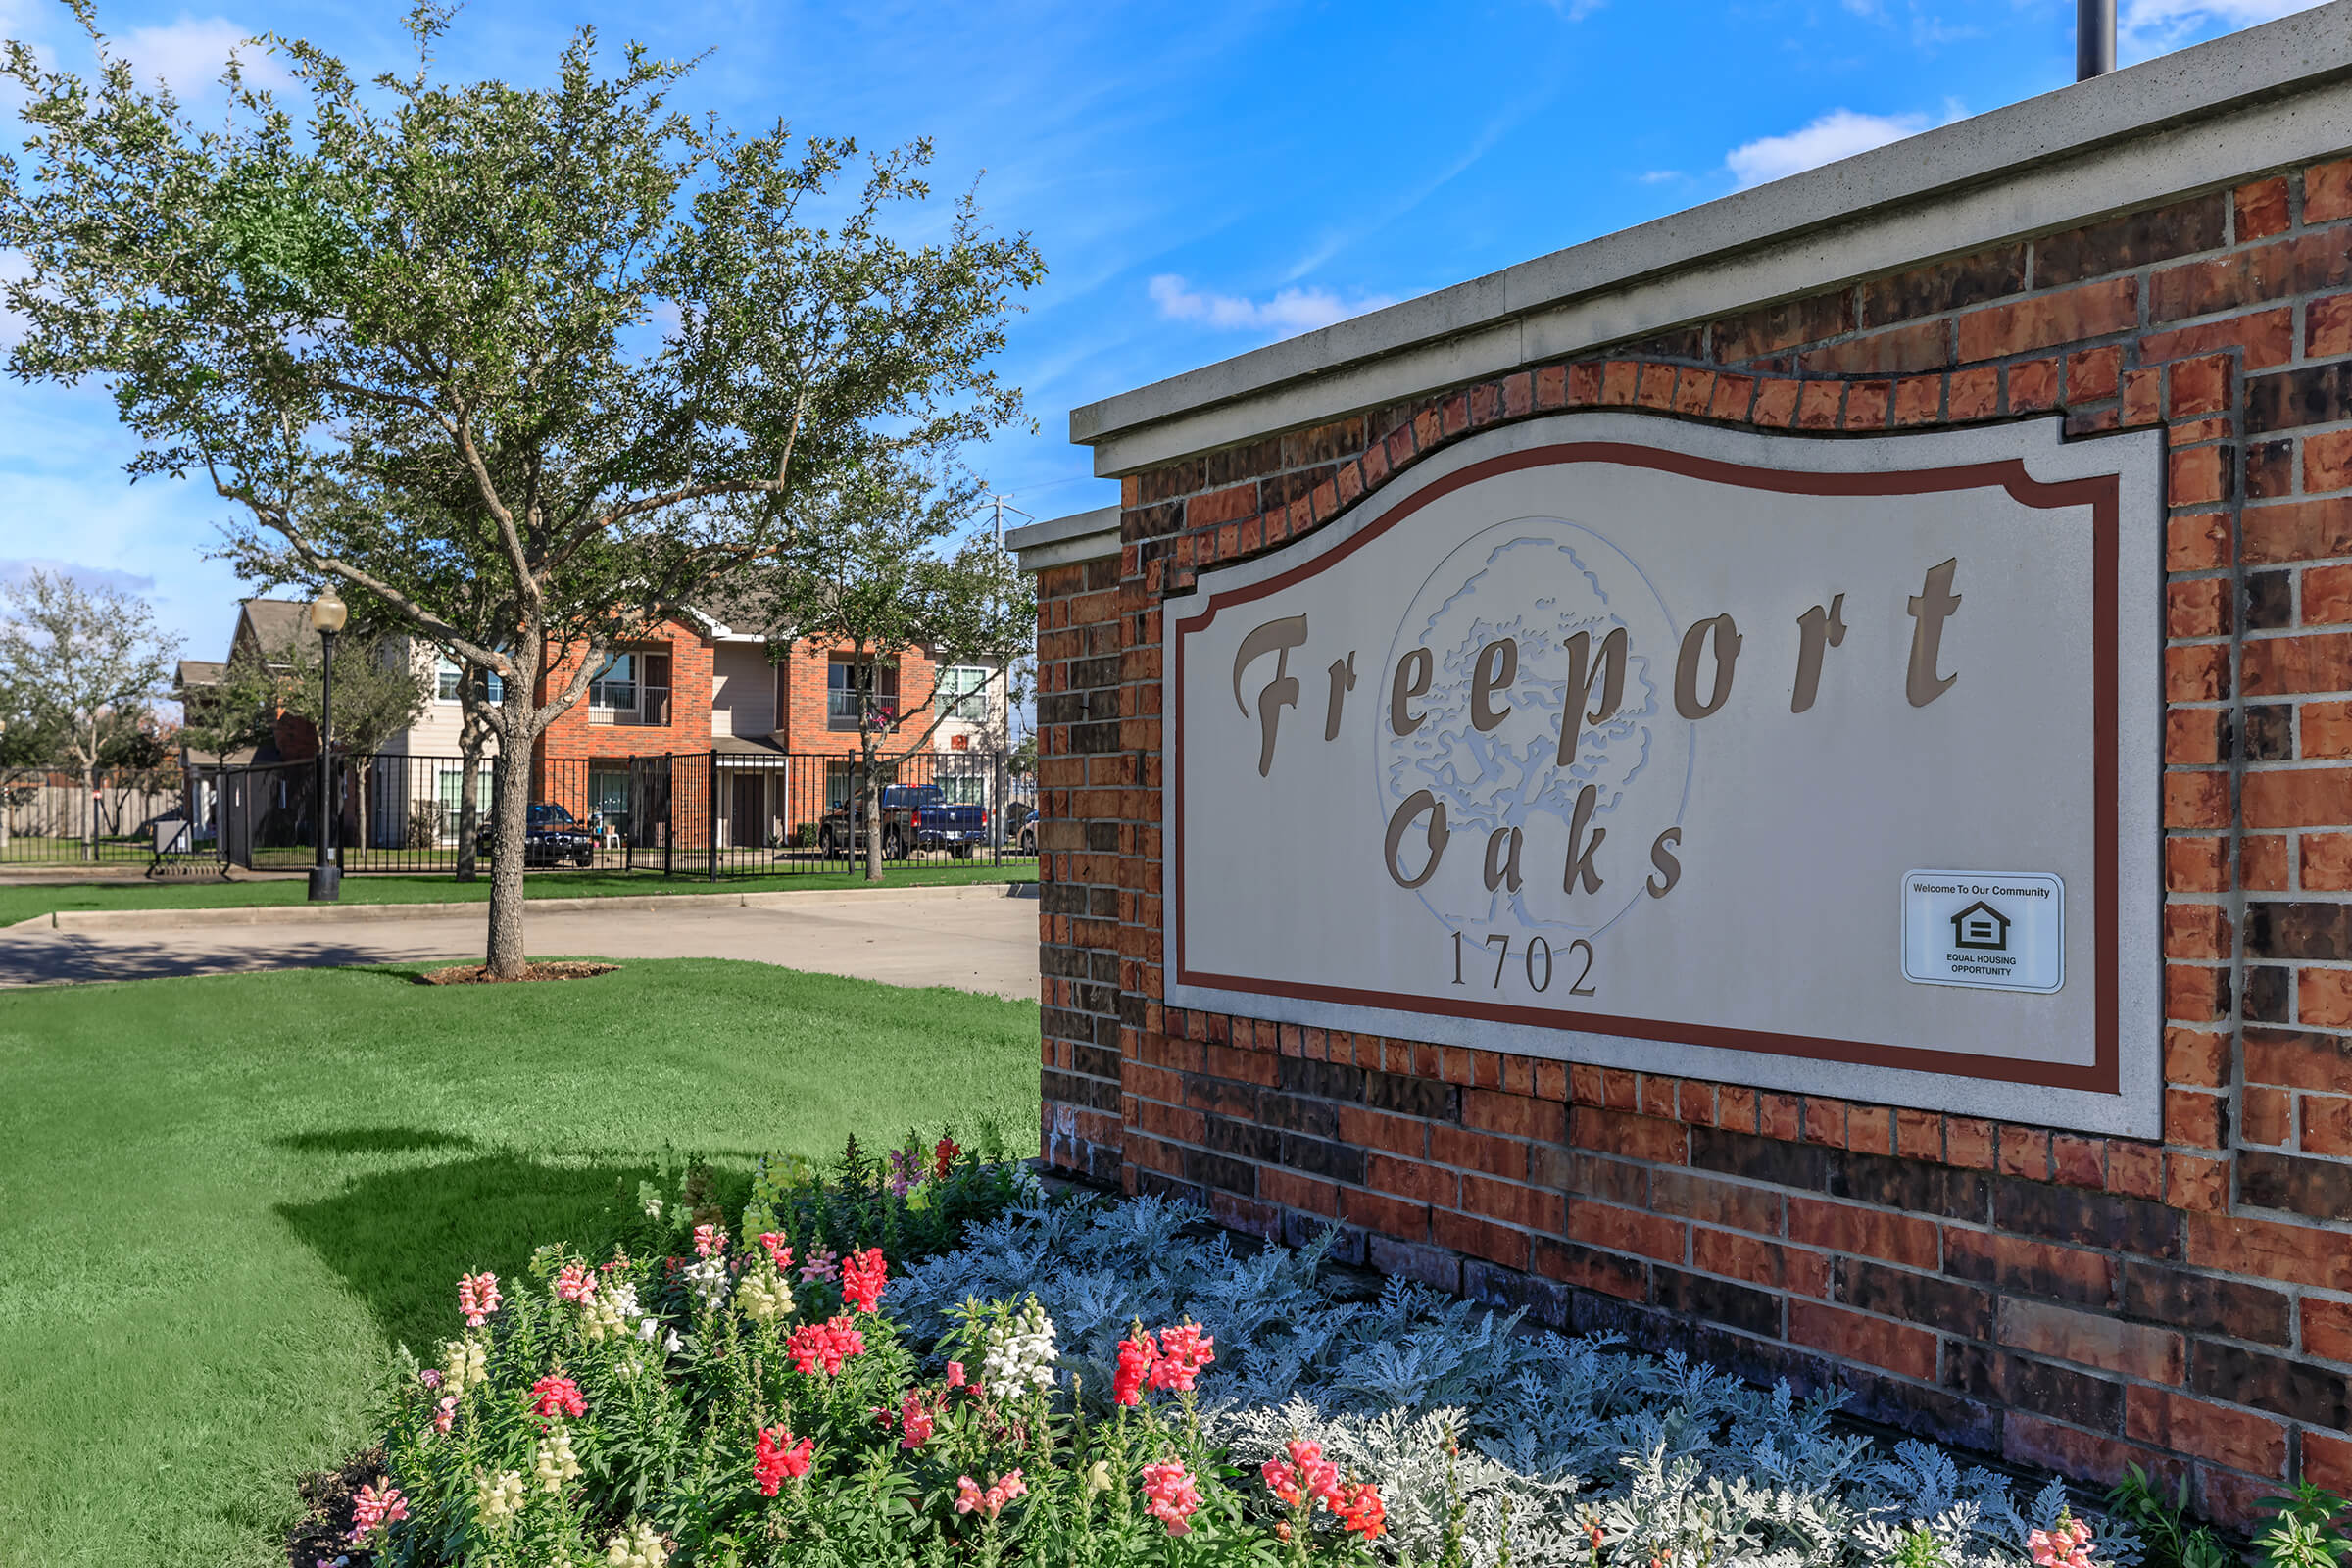 Picture of Freeport Oaks Apartments